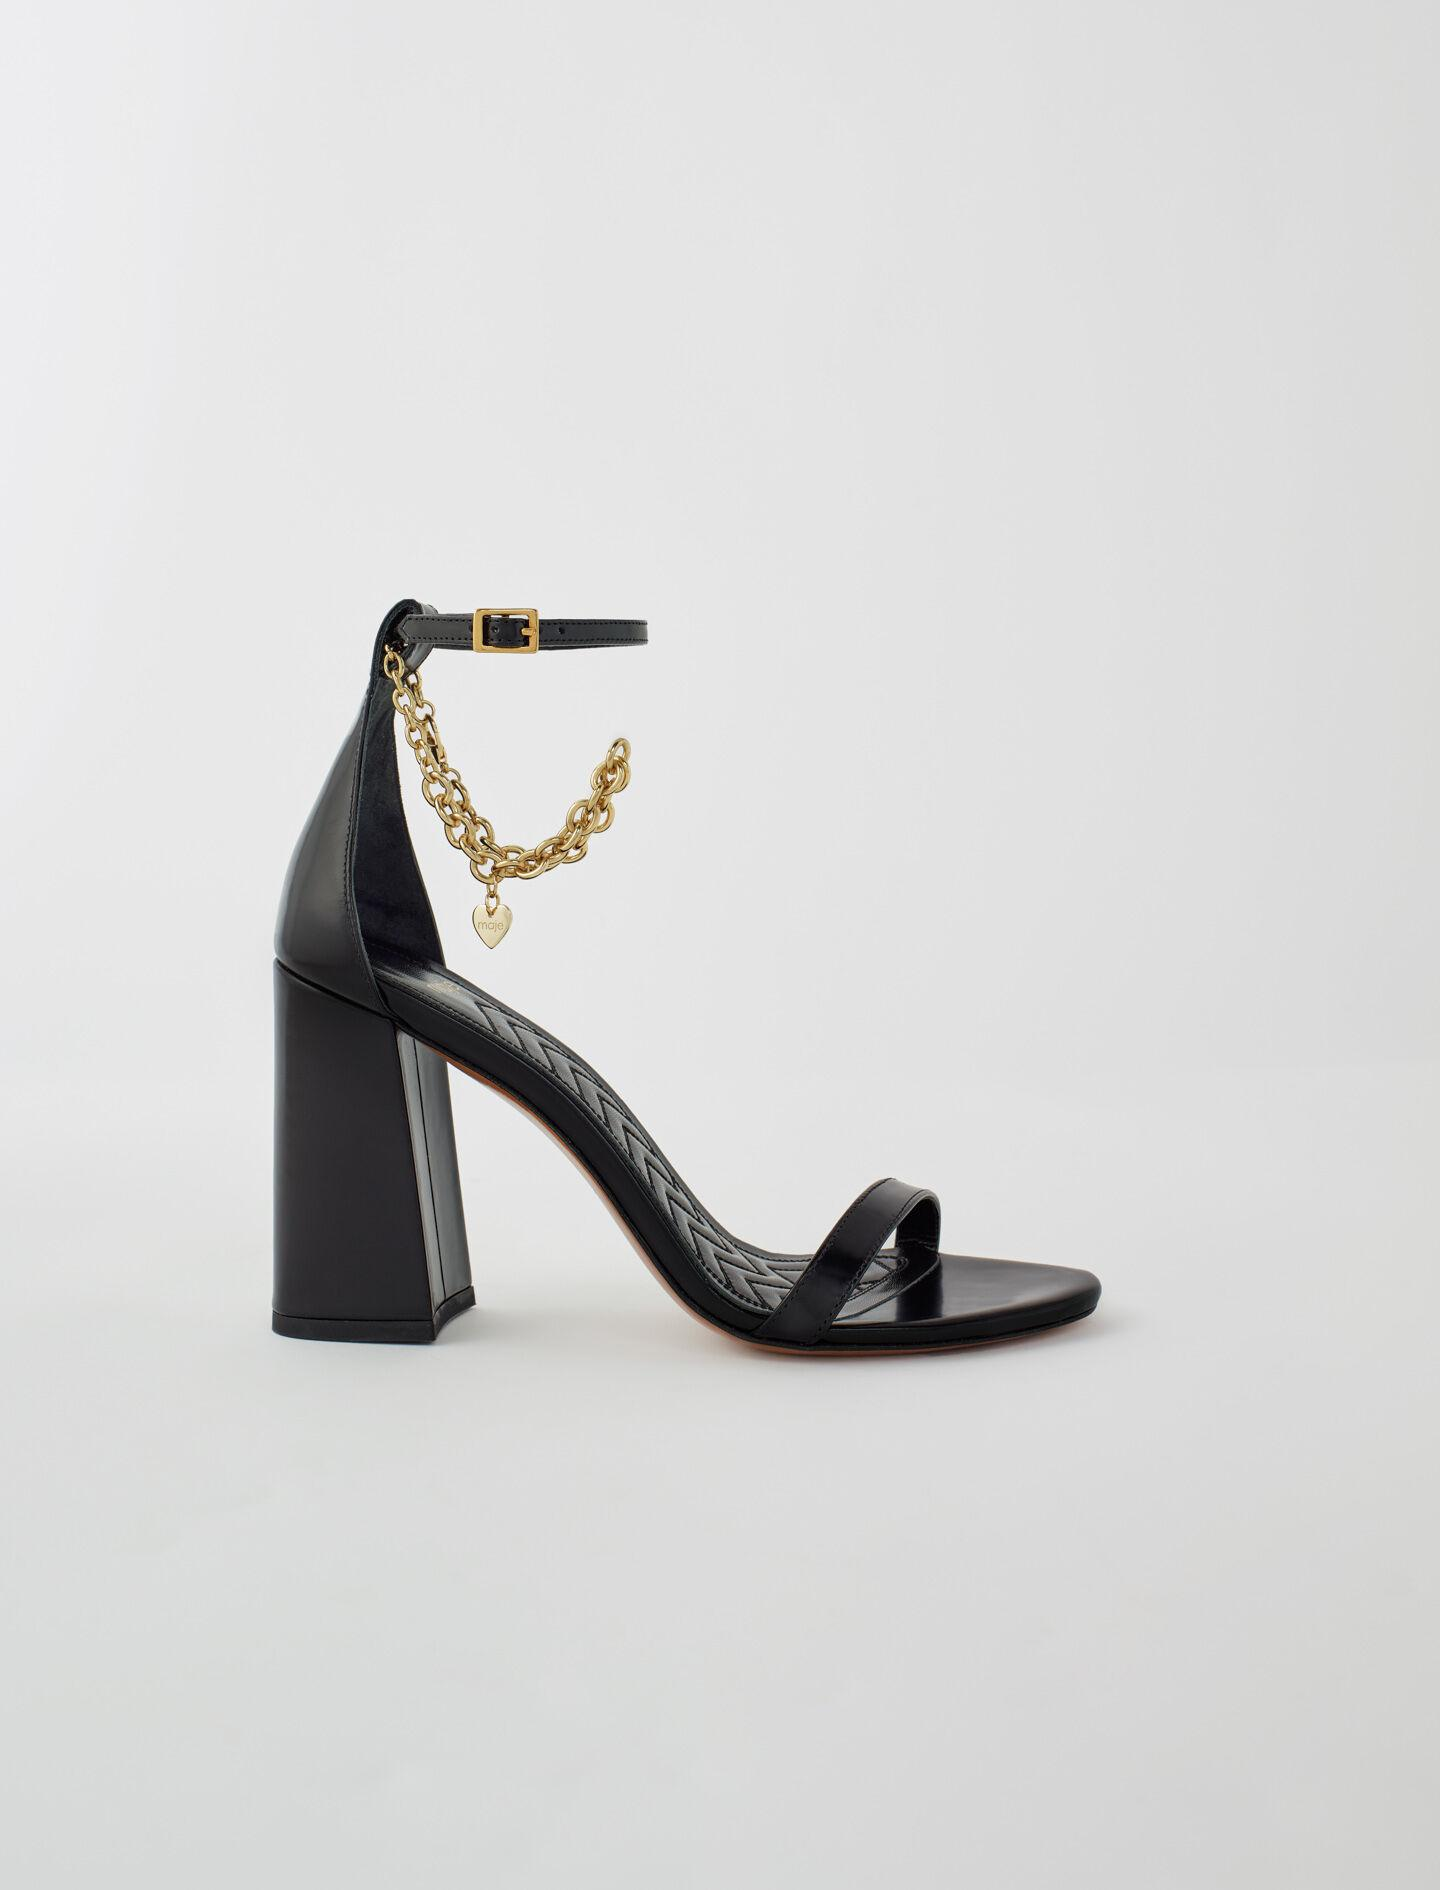 HIGH HEEL SANDALS WITH GOLD-TONE CHAIN